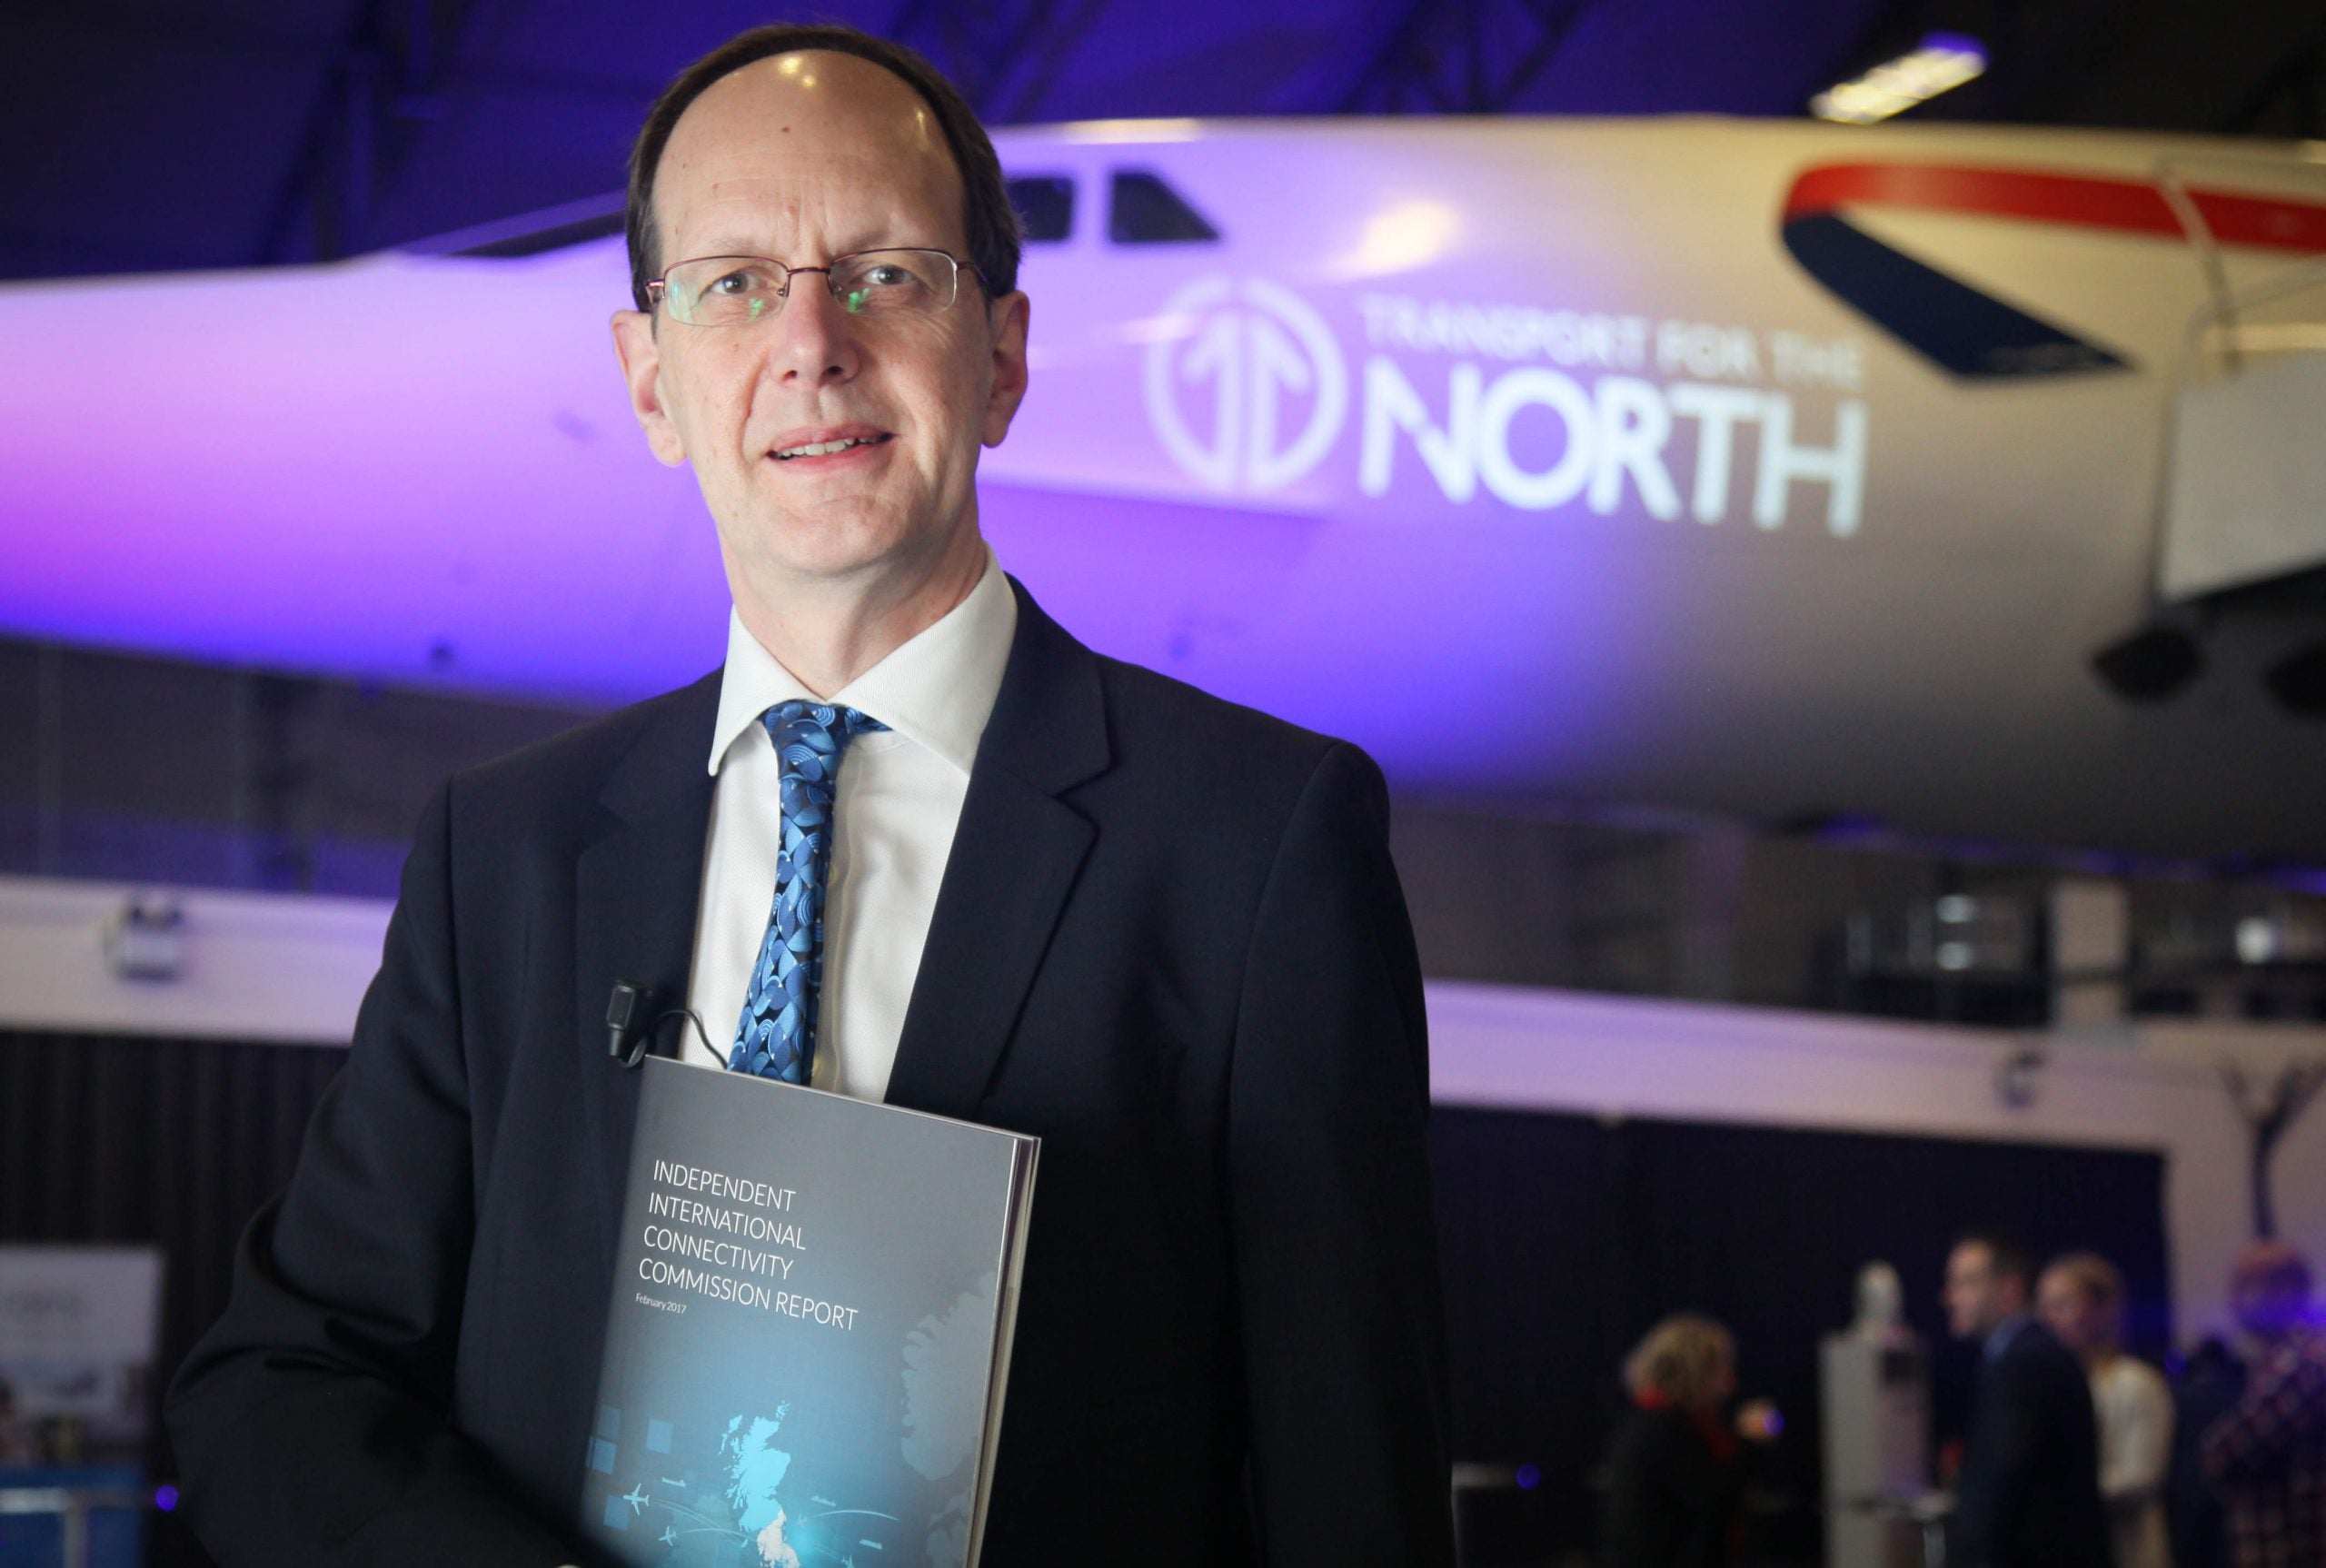 Transport for the North: international connectivity is key to our success